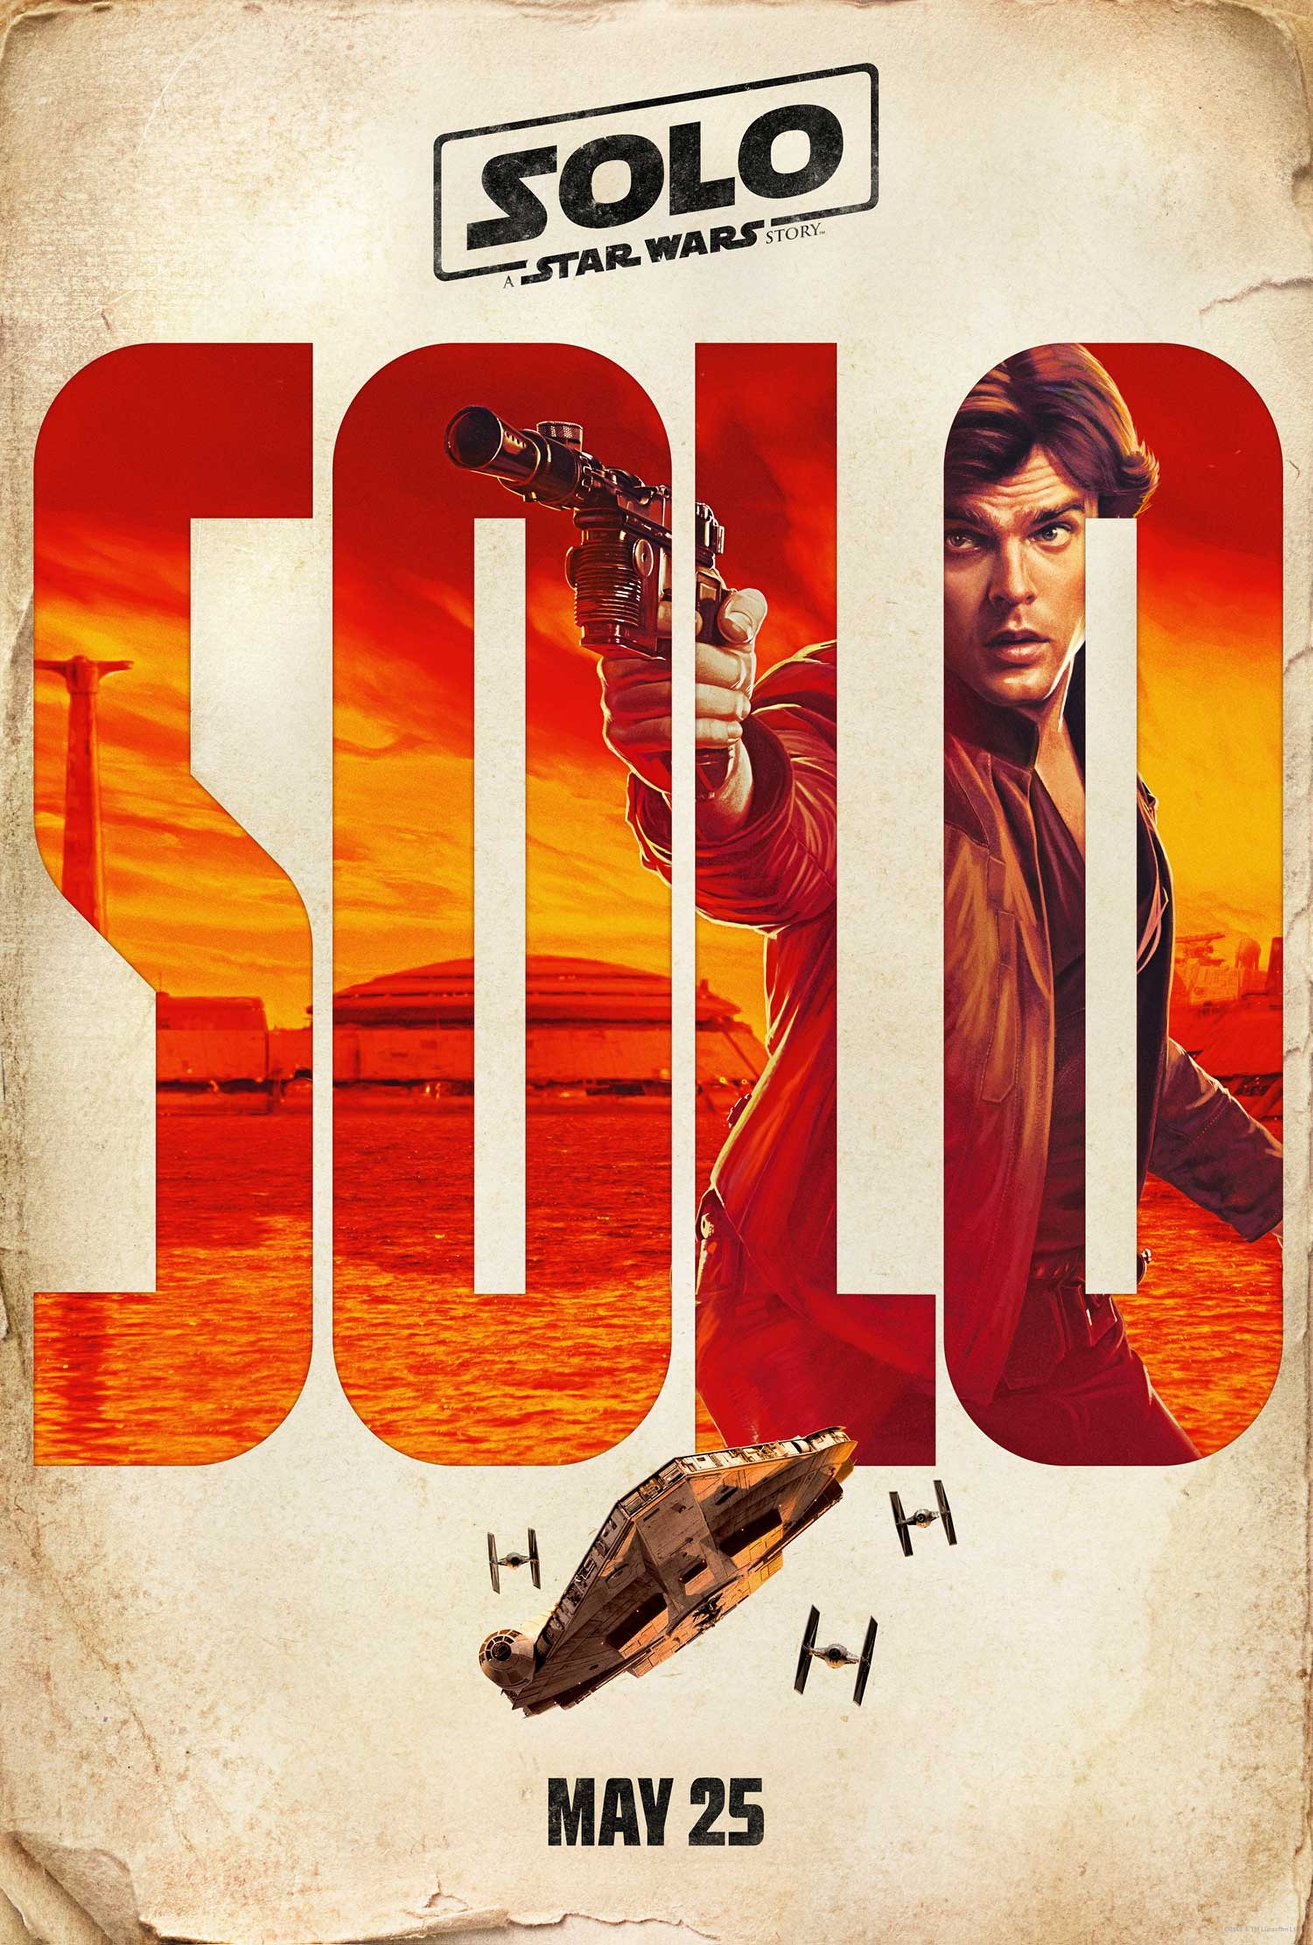 Solo - Star Wars Story